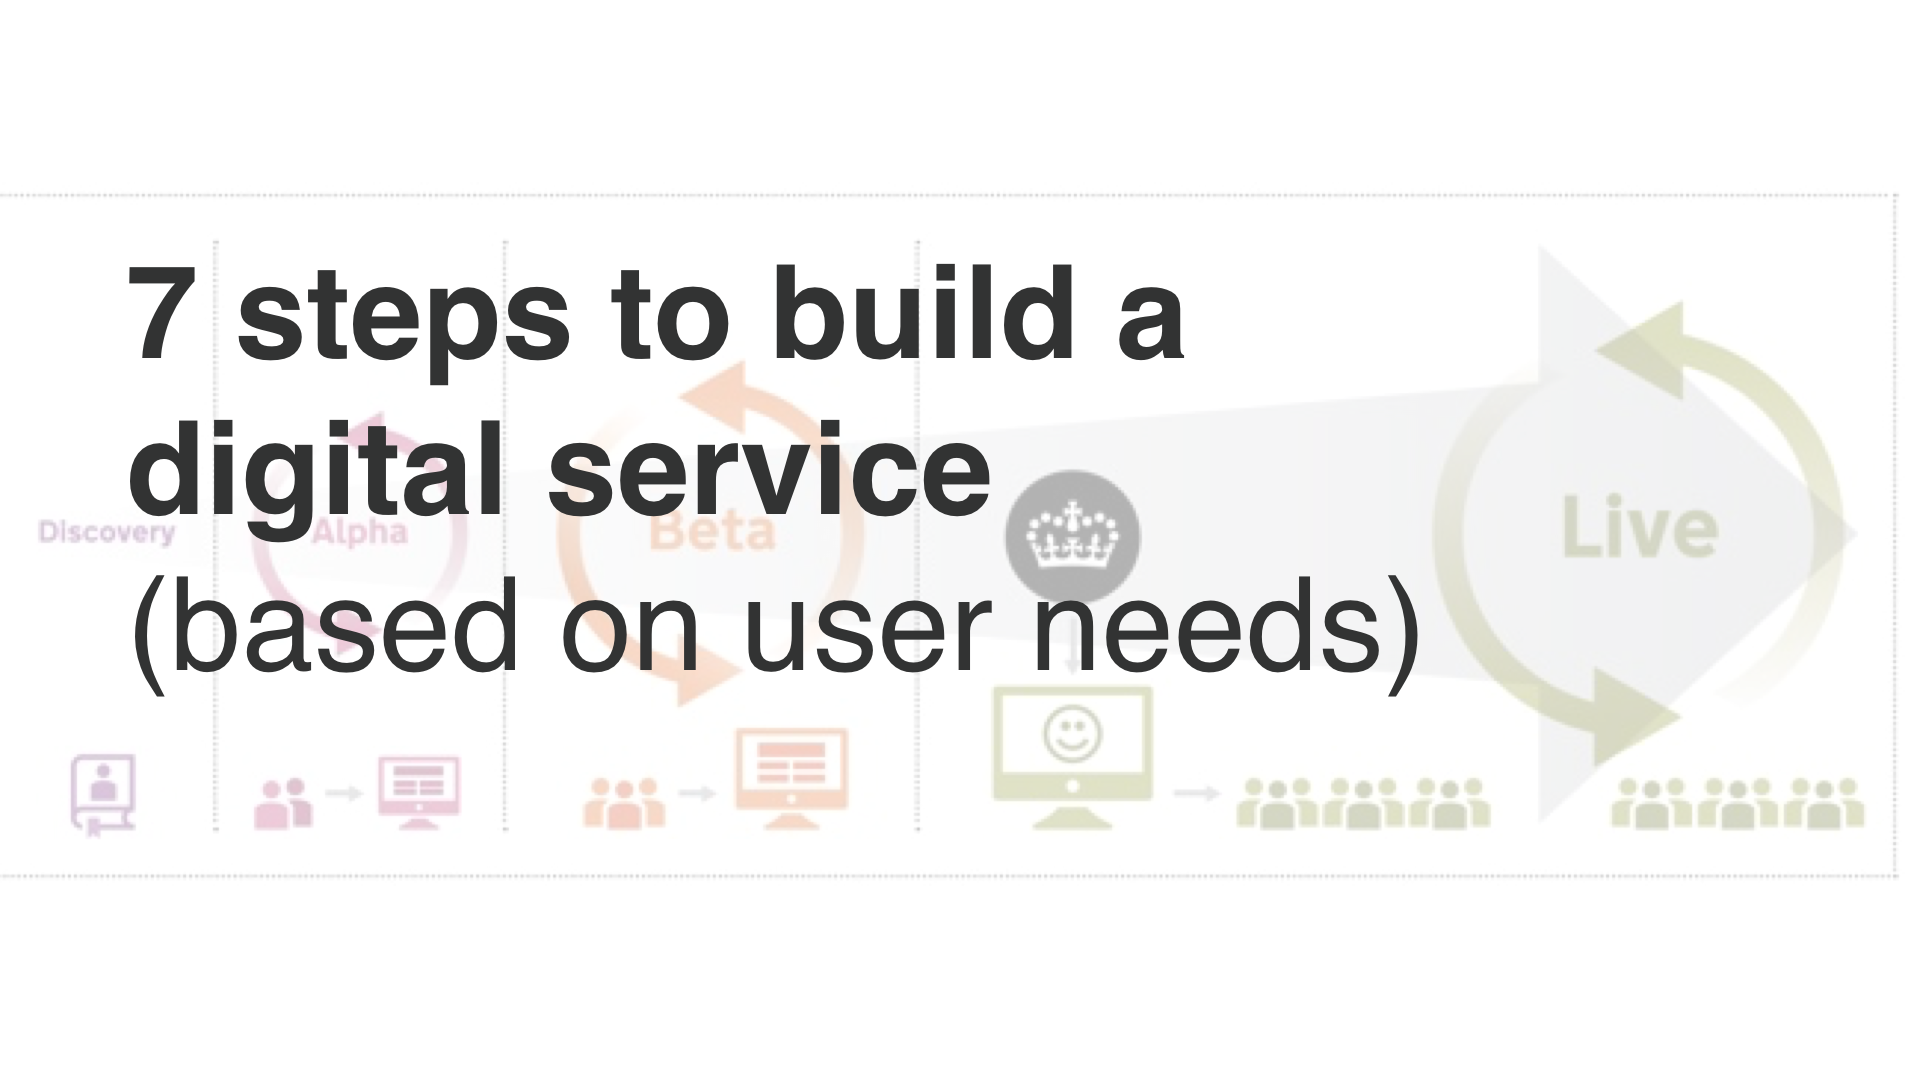 """7 steps to build a digital service - based on user needs"""